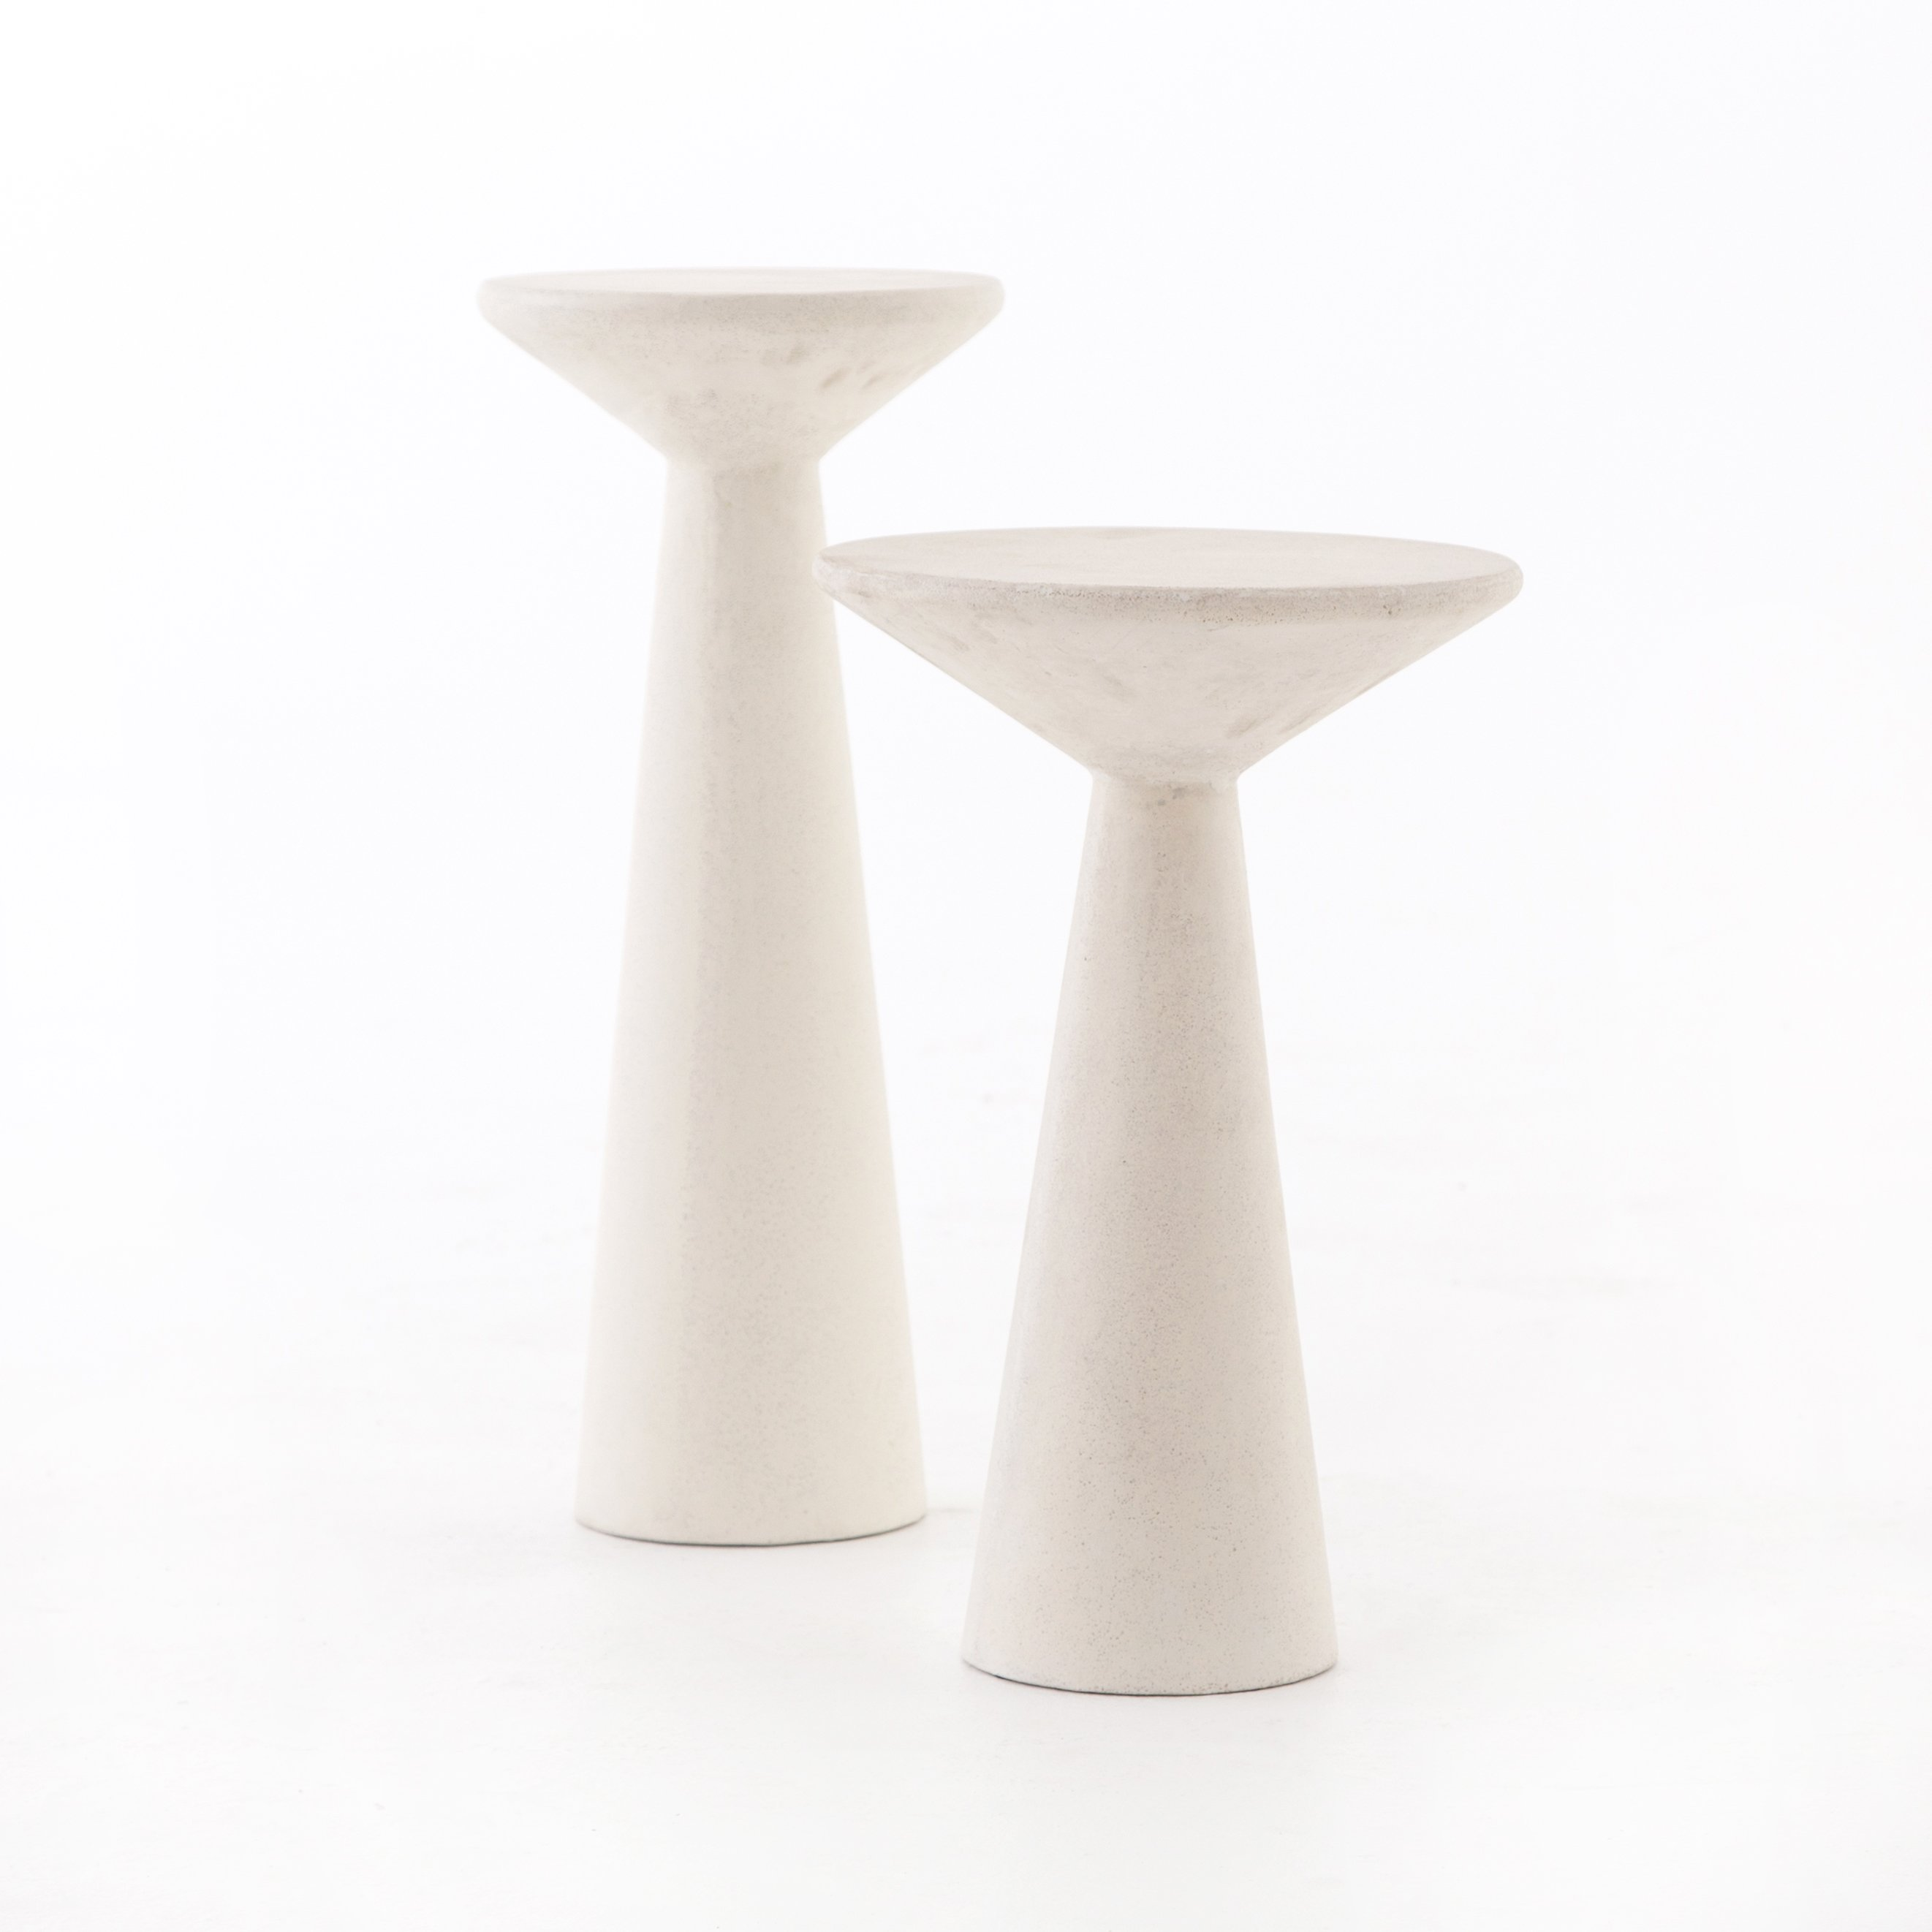 vevr four hands ravine concrete accent tables set white ceramic table quote details next furniture nest look dining chairs and trestle tall bedside with drawers west elm